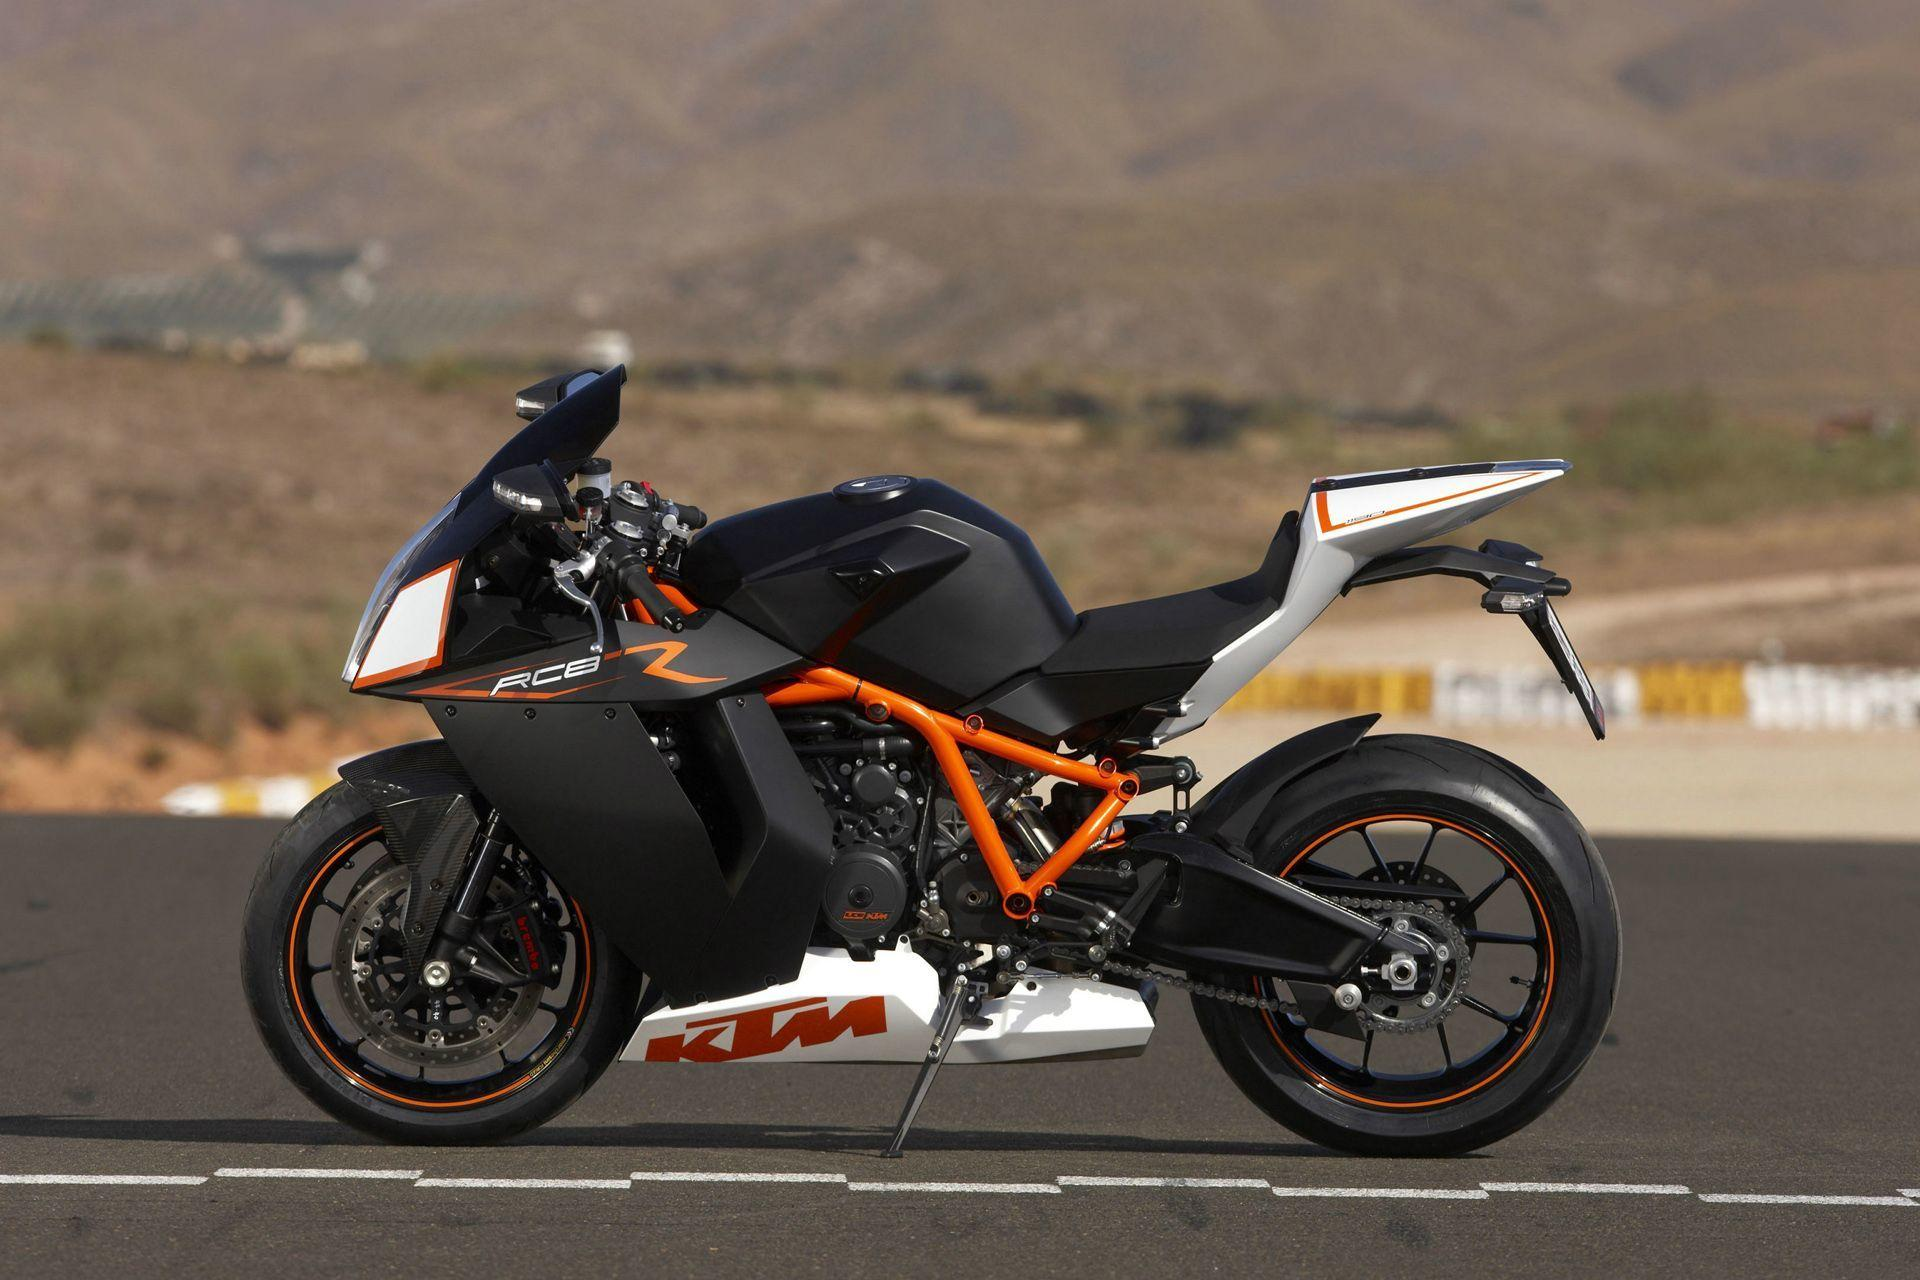 Download the KTM 11900 RC8 R Heated Wallpaper, KTM 11900 RC8 R